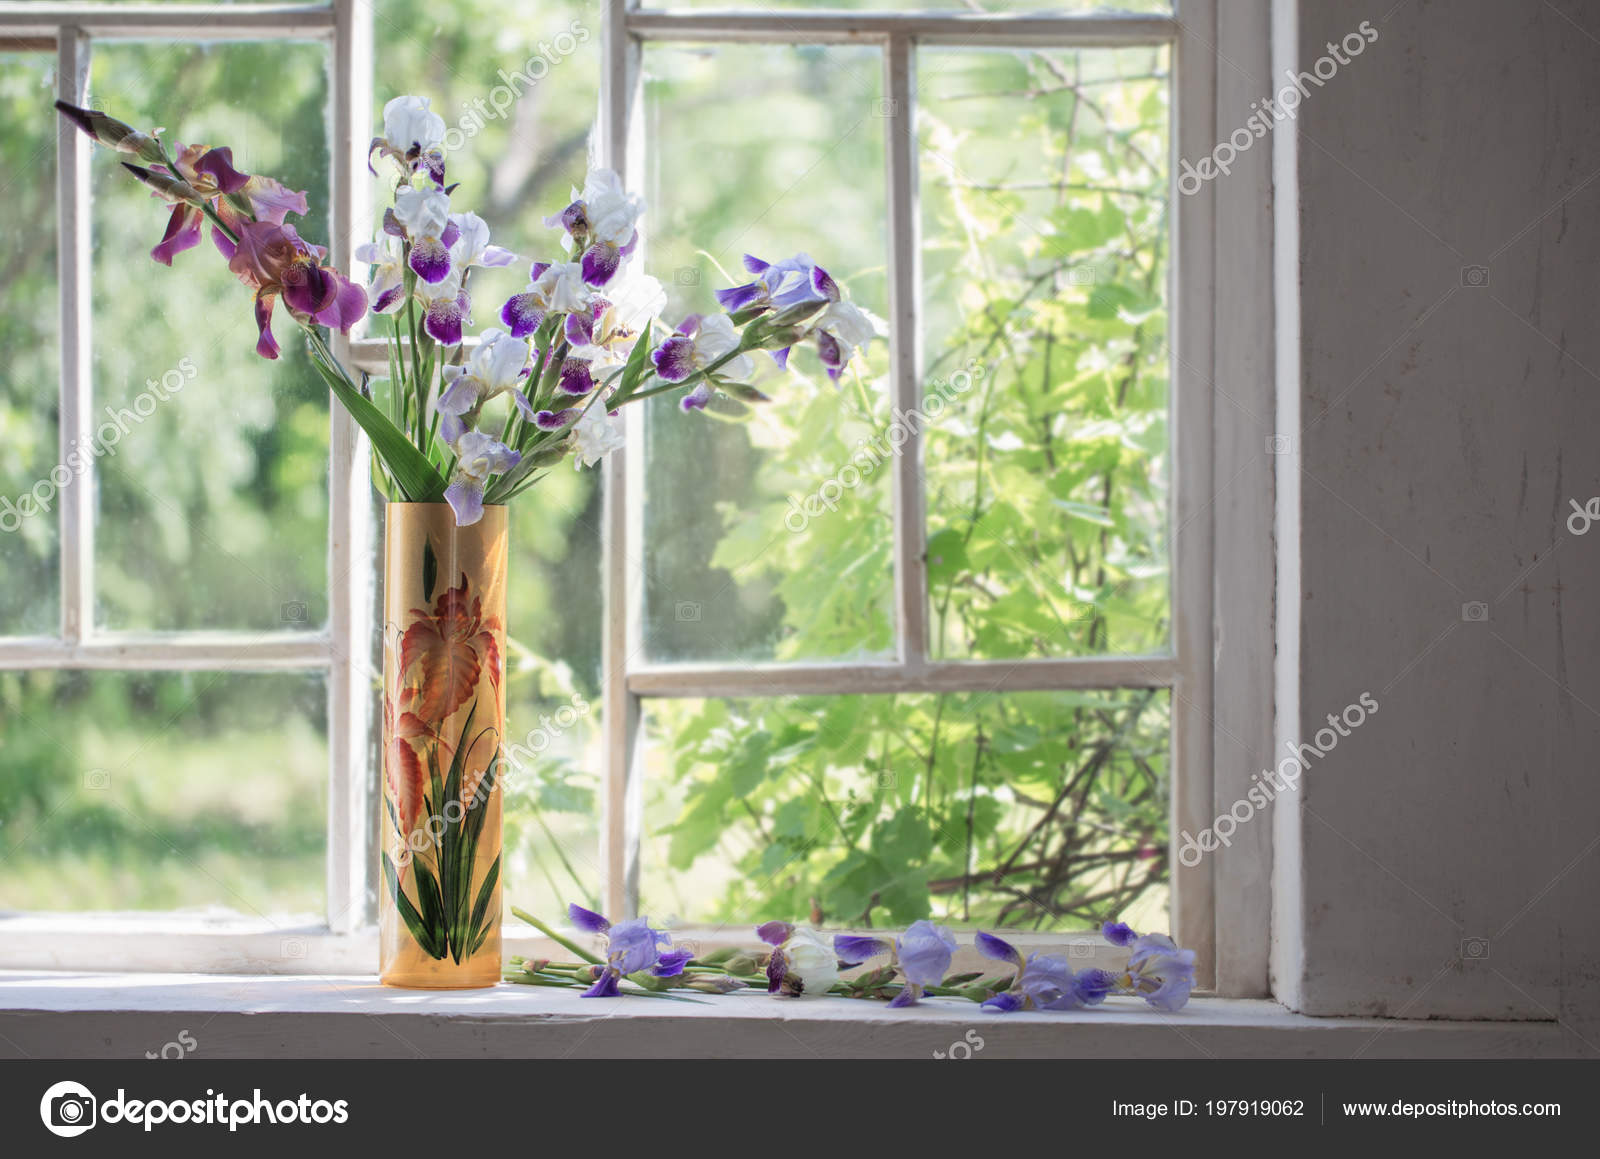 Old Windows and Flowers 7x5ft Shabby Countyard Backdrop Blooming Flowers Green Plants Vintage Wood Window Blue Board Rustic Concrete Wallpaper Spring Photography Background